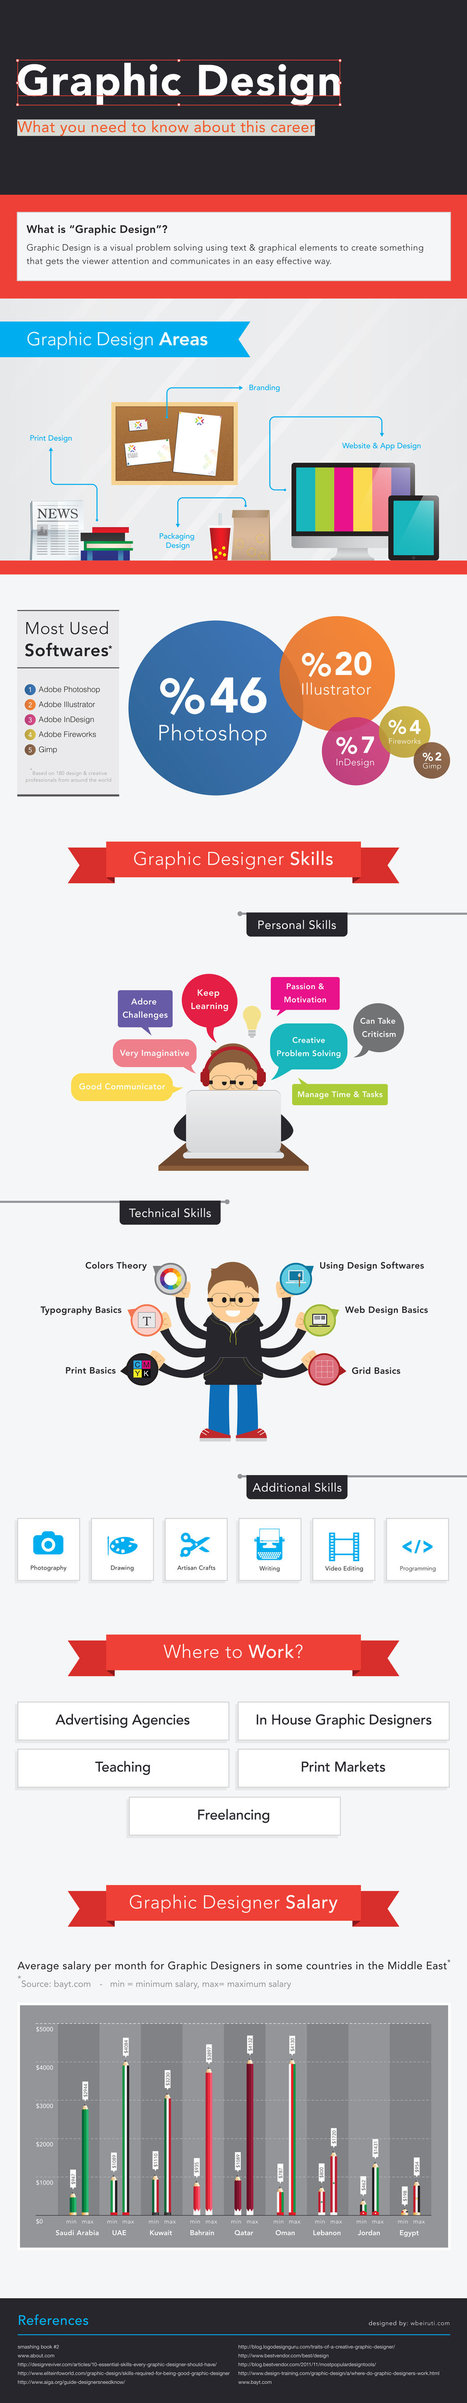 Graphic Design Infographic   Affordable Business   Scoop.it